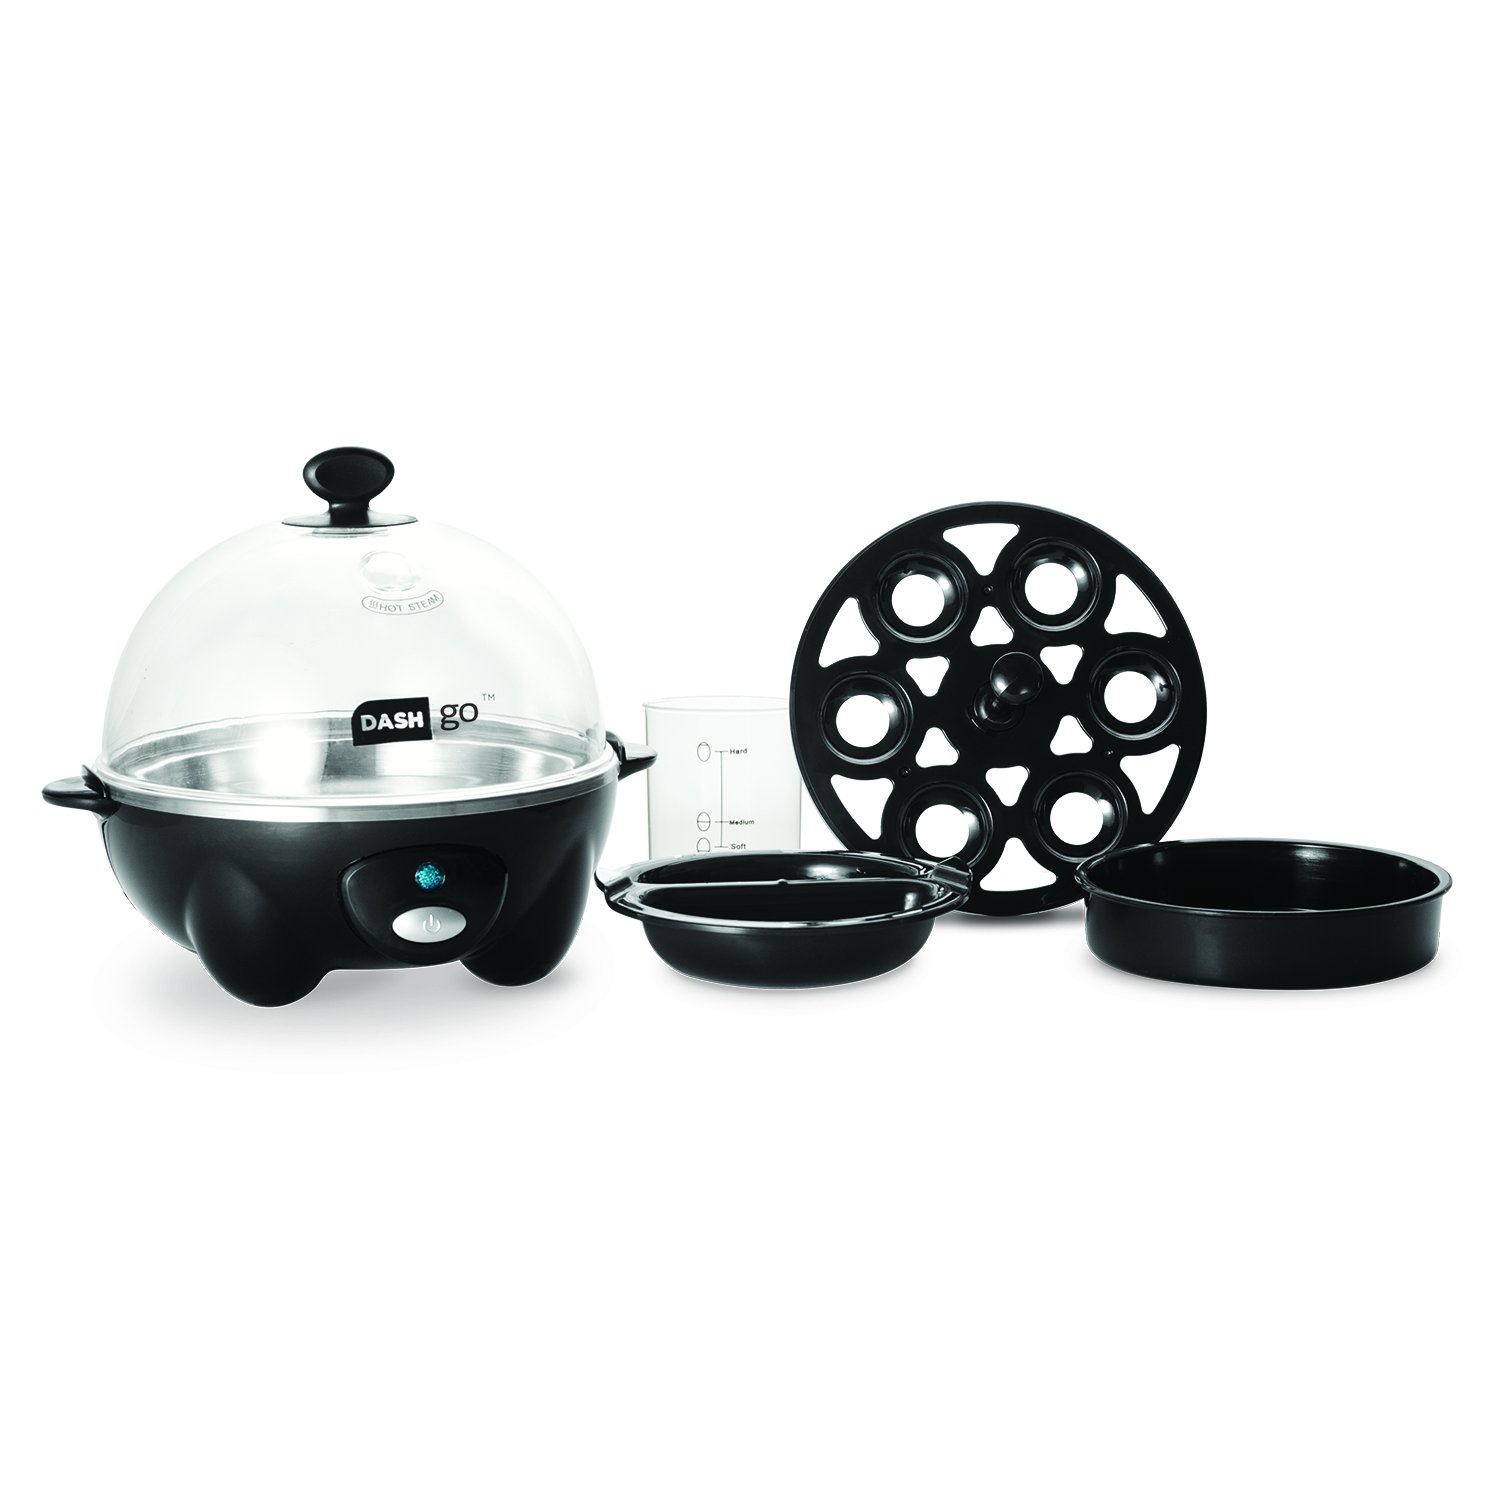 dash rapid egg cooker black electric egg cookers